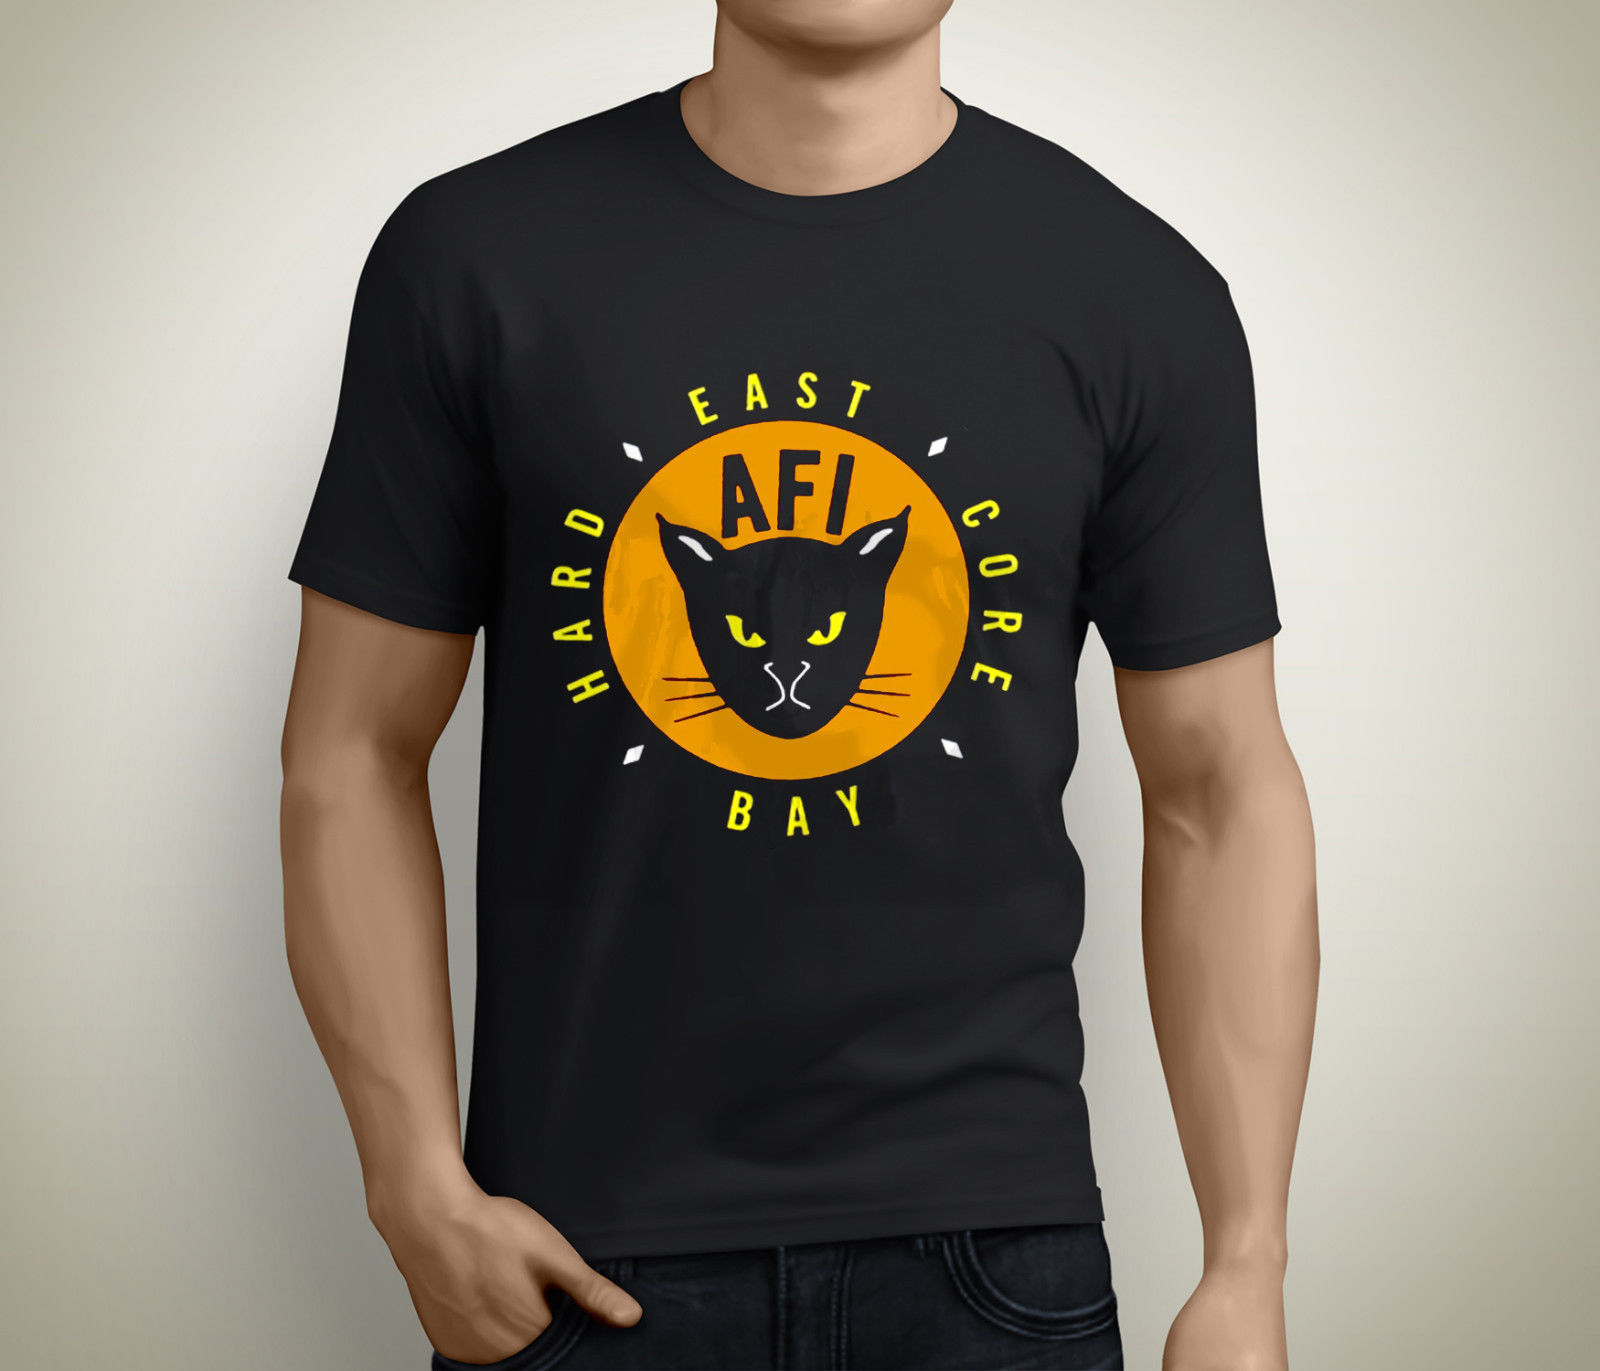 New AFI East Bay Kitty Rock Band Short Sleeve Mens Black T-Shirt Size S to 3XL Free Shipping Summer Fashion shirts